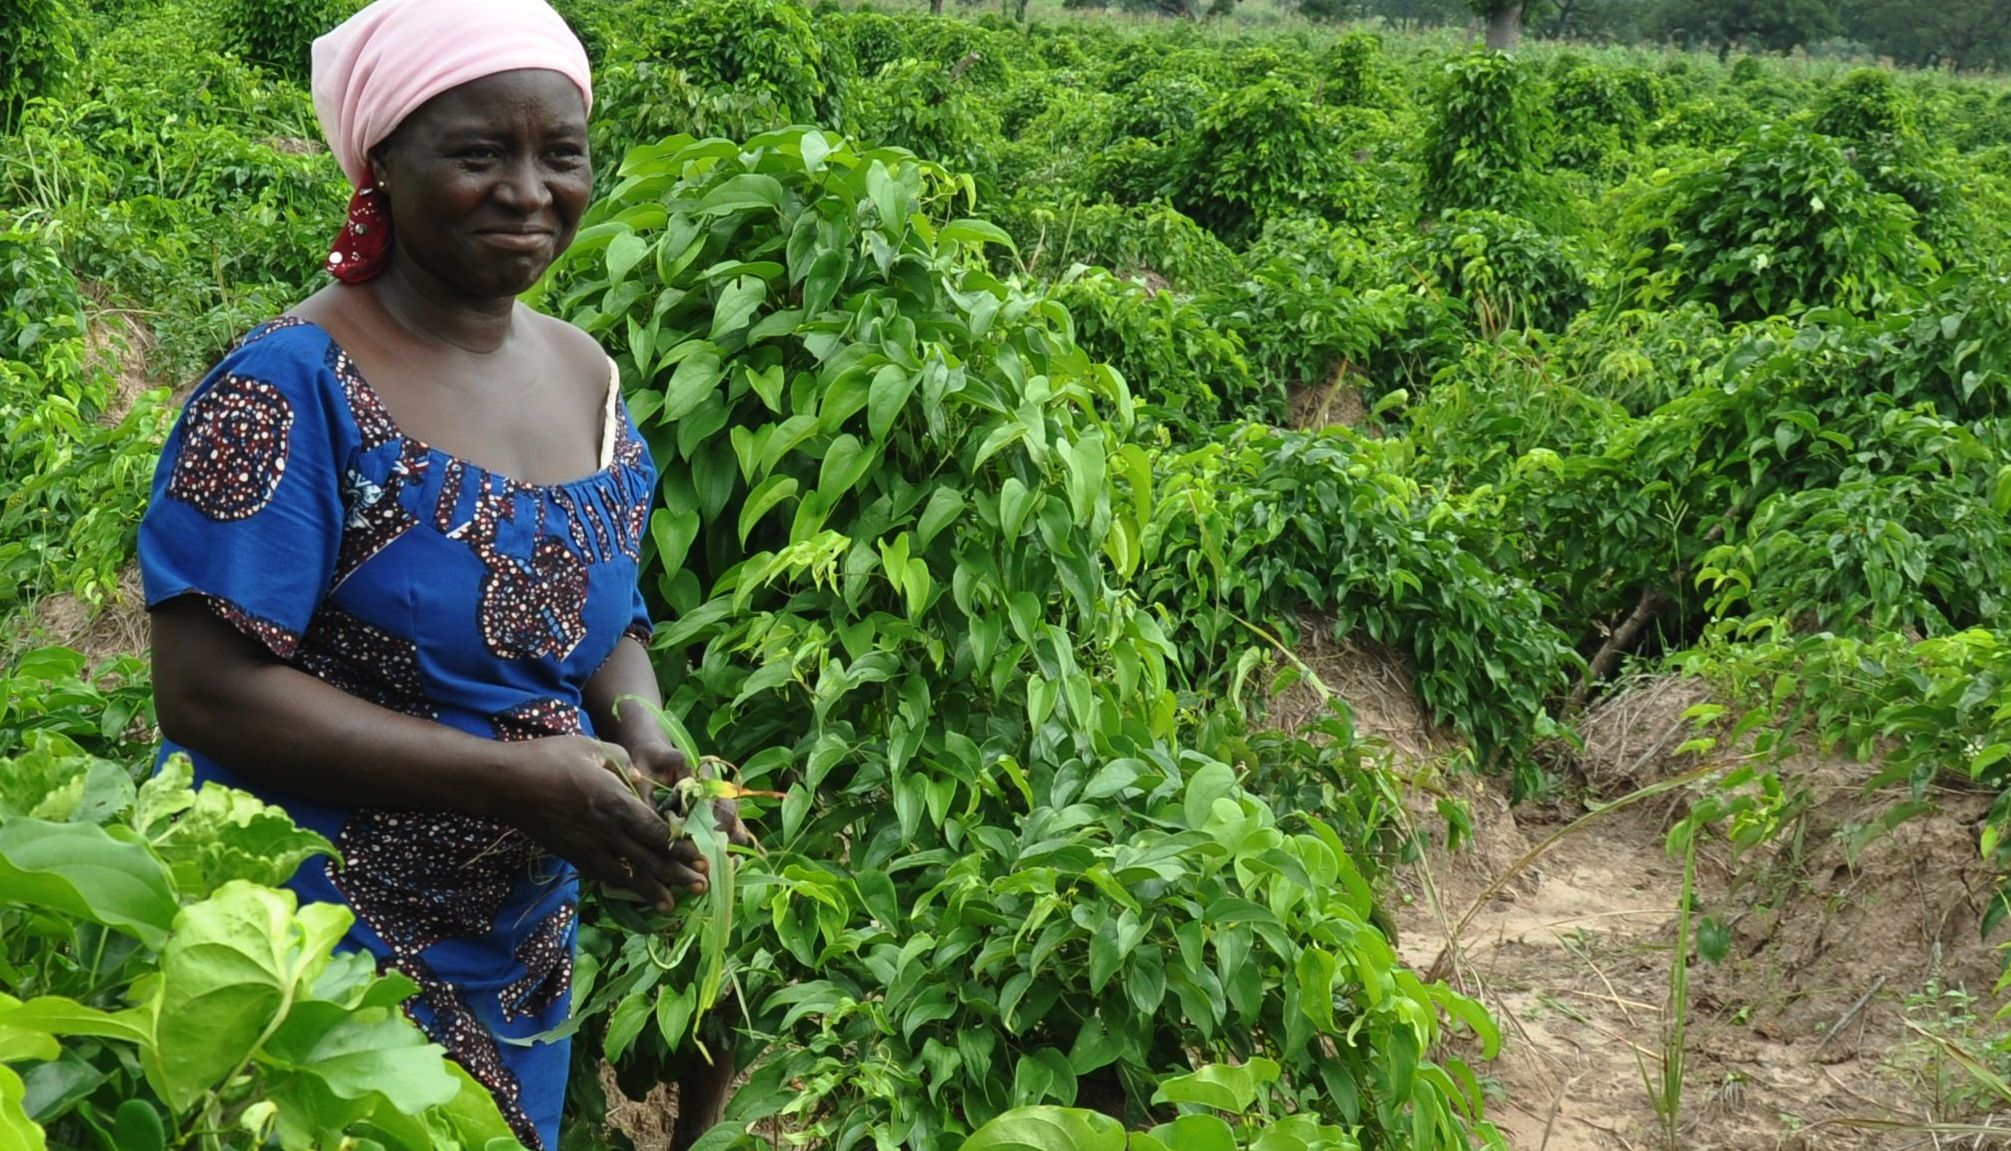 About 80% of land in Yoruba is cultivable, and about 13% is forested. There is also livestock that farmers raise.